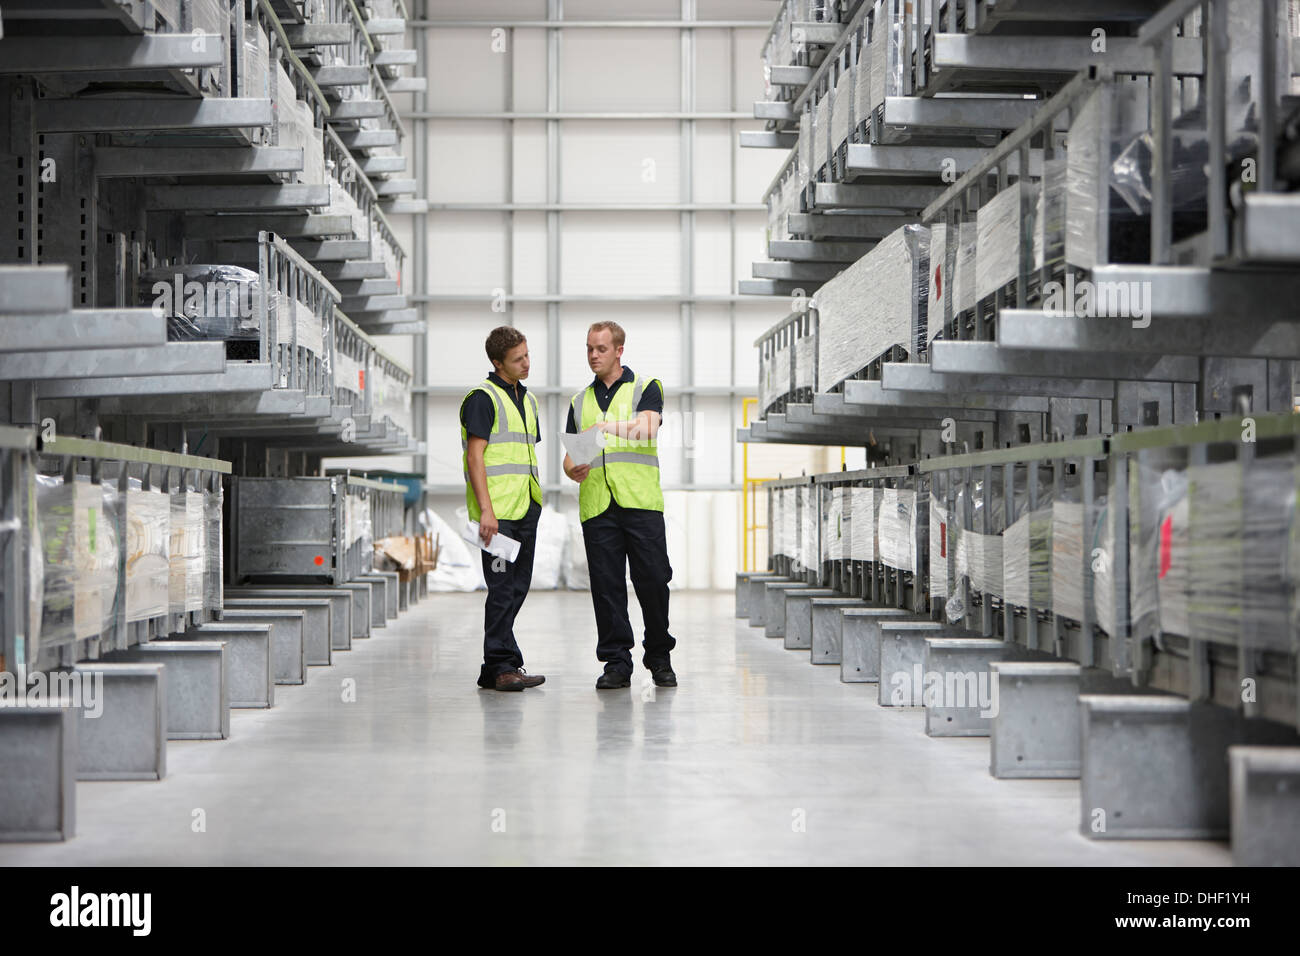 Warehouse workers in engineering warehouse - Stock Image